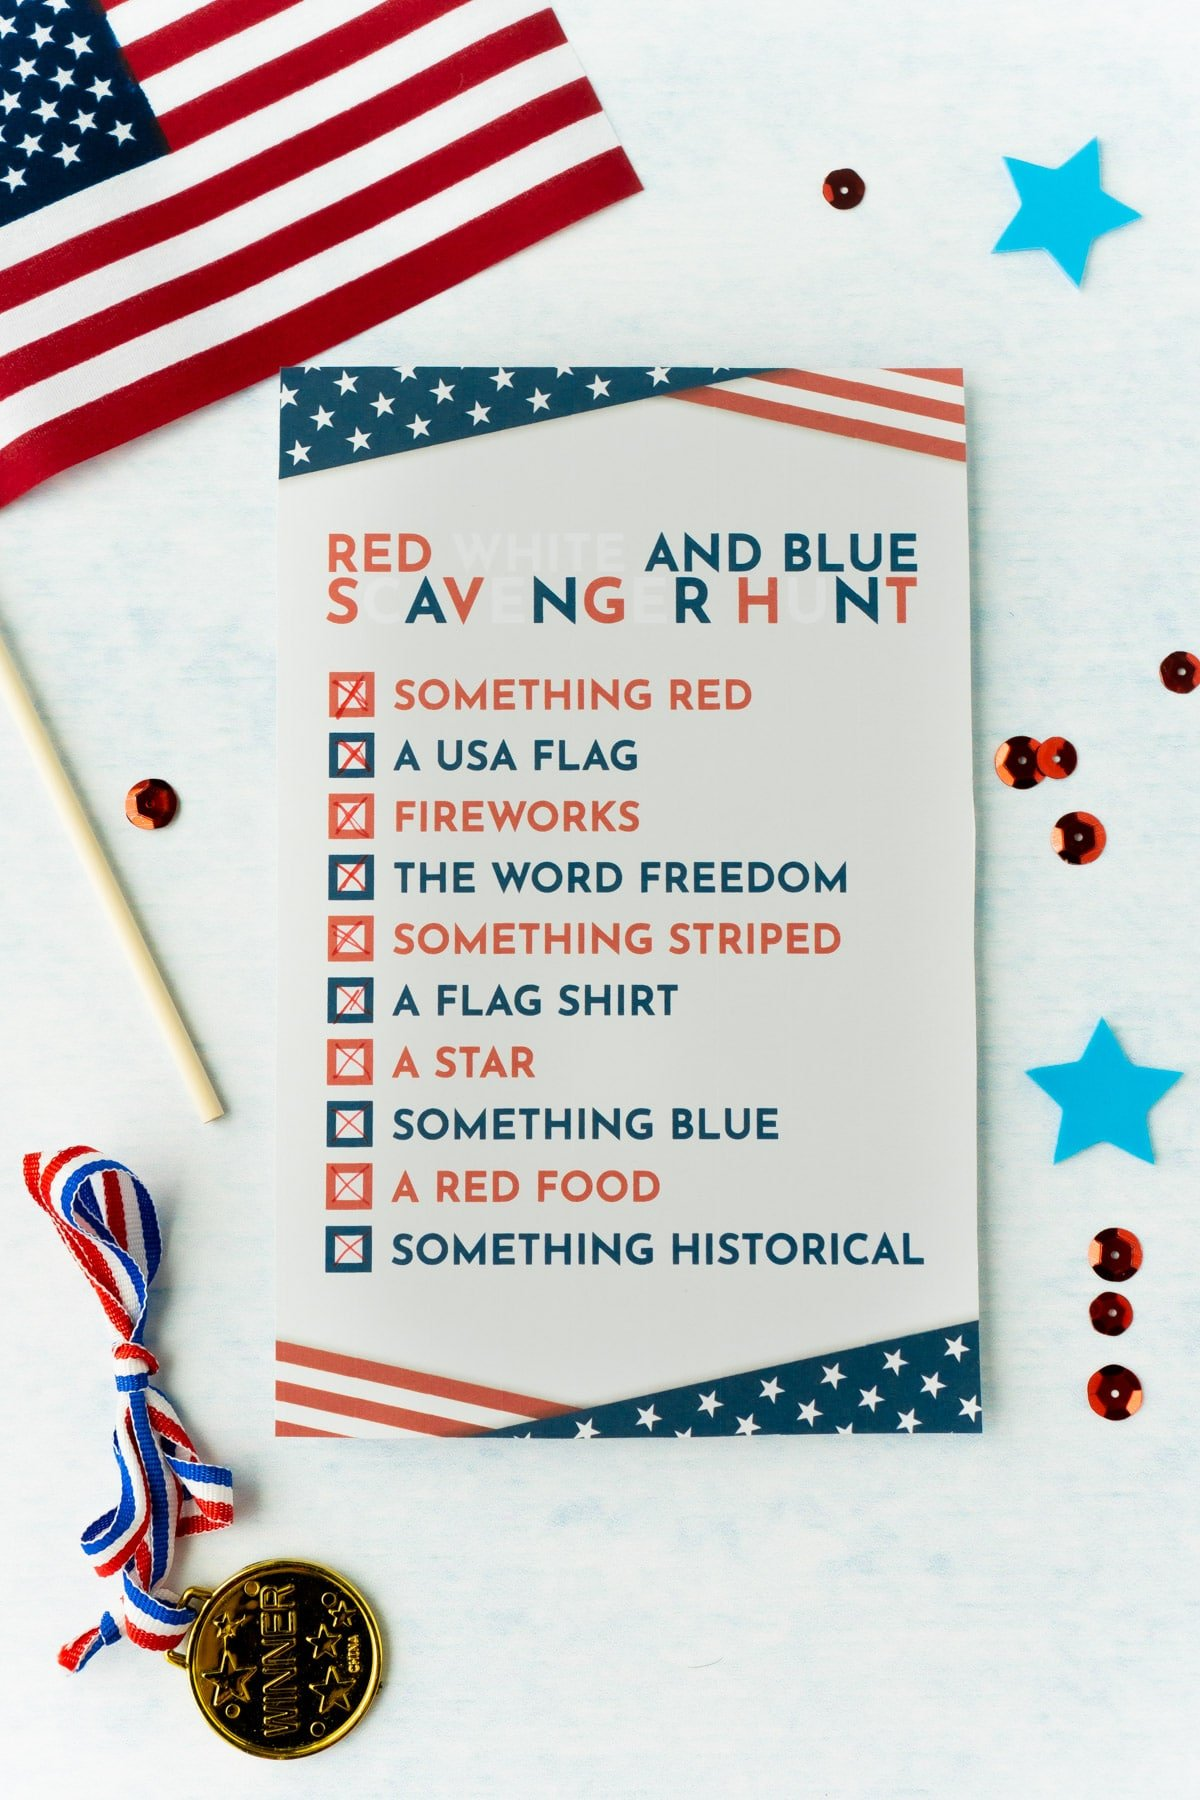 One 4th of July scavenger hunt checklist with an American flag